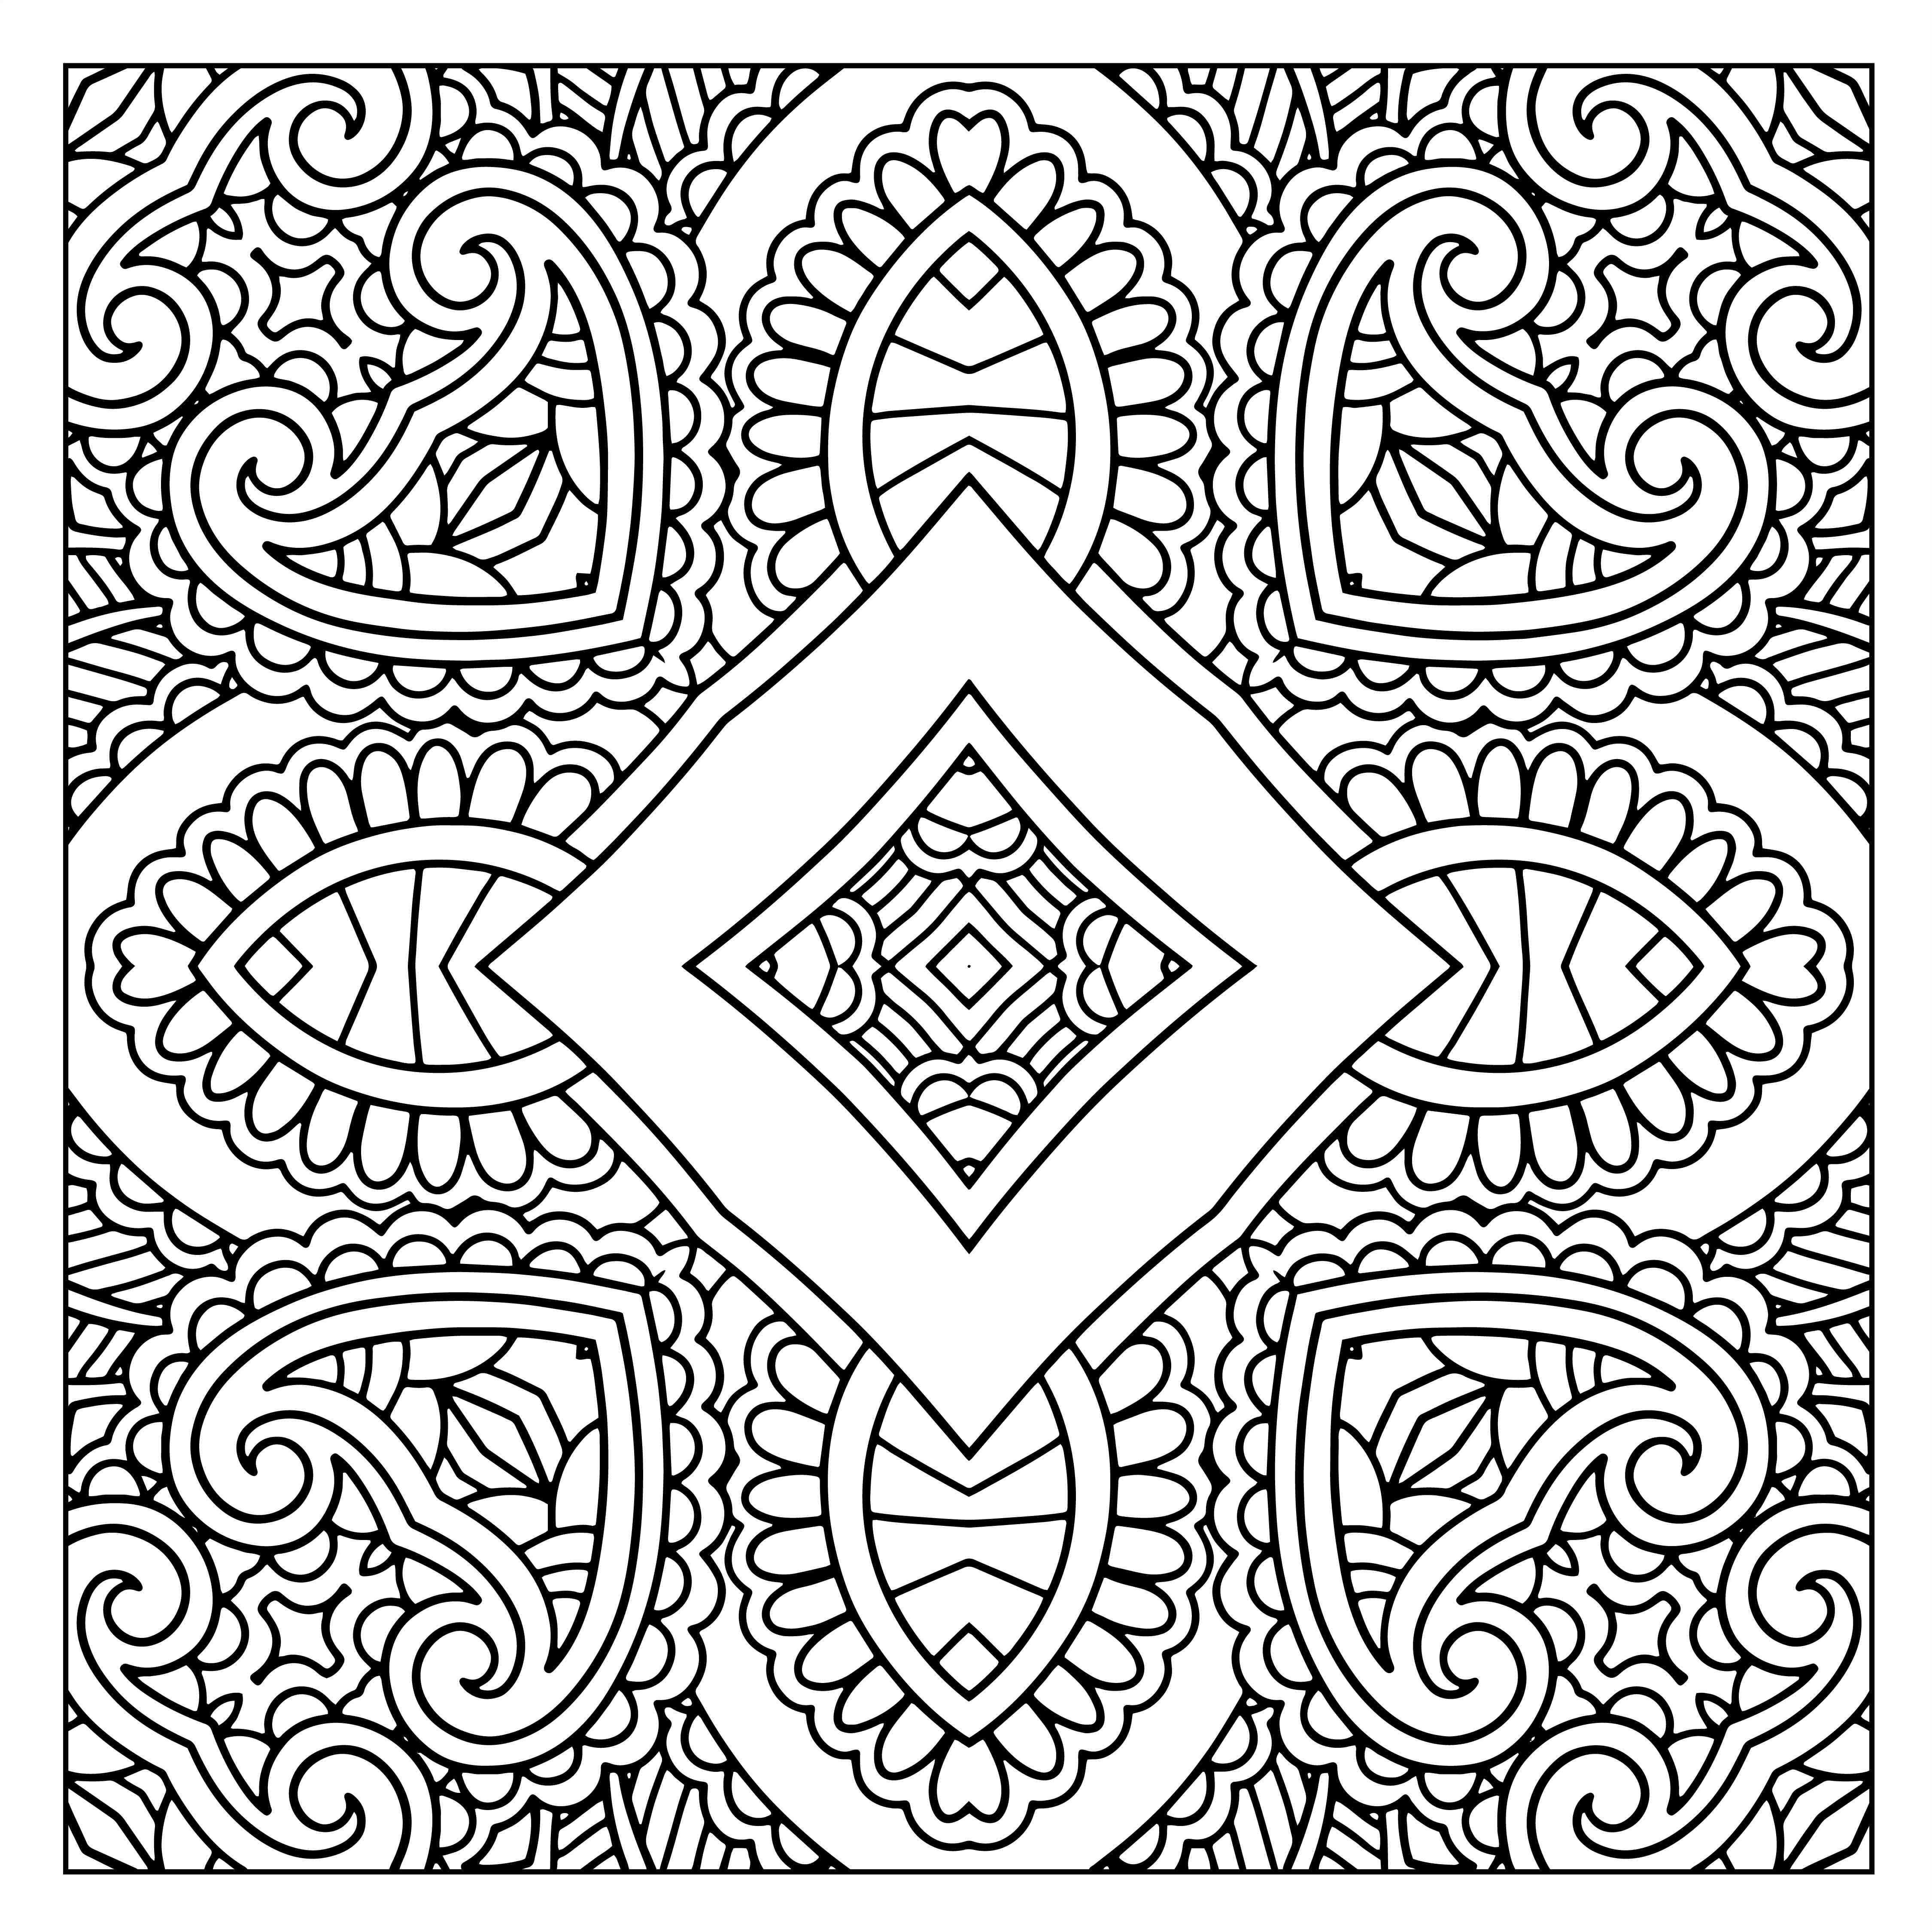 free design coloring pages 50 free square patterns kaleidoscope adult coloring design pages coloring free